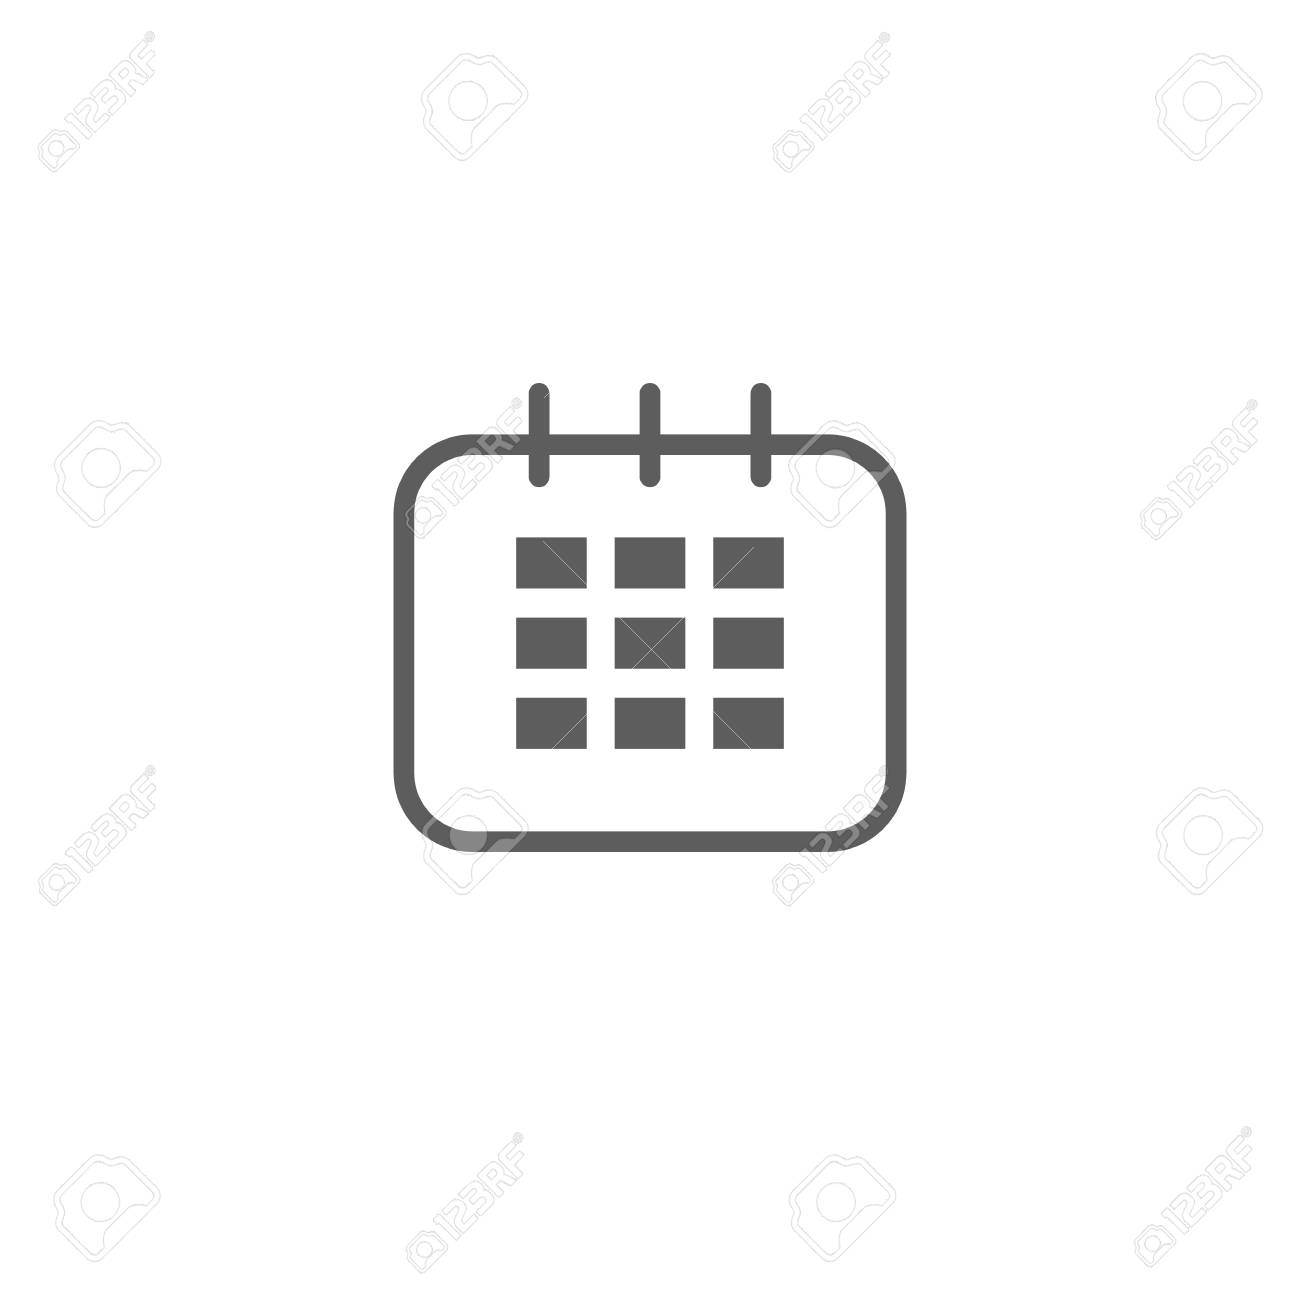 Calendar Icon In Trendy Flat Style Isolated On Grey Background intended for Calendar Icon Grey